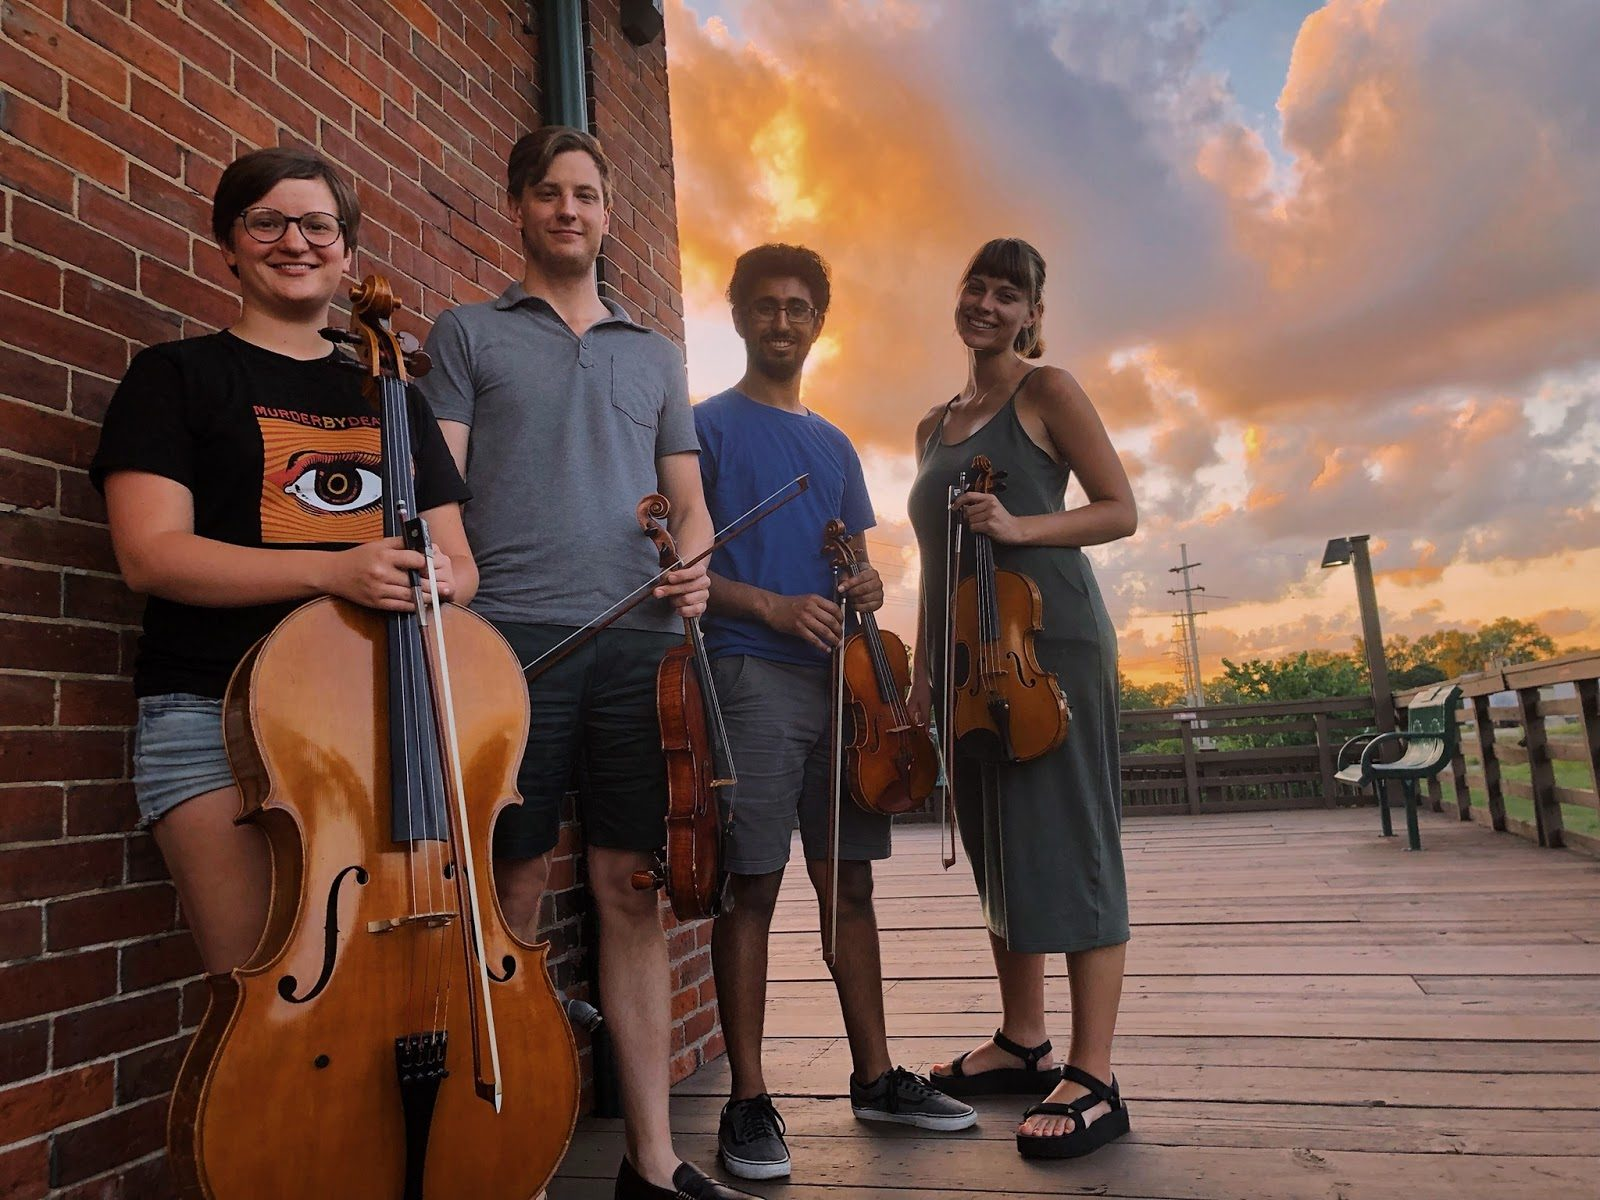 Converge Quartet -standing with their instruments in front of a sunset, left to right, Hanna Rumora, cello, Ryan McDonald, viola, Malhar Kute, violin, and Megan Rohrer, violin.